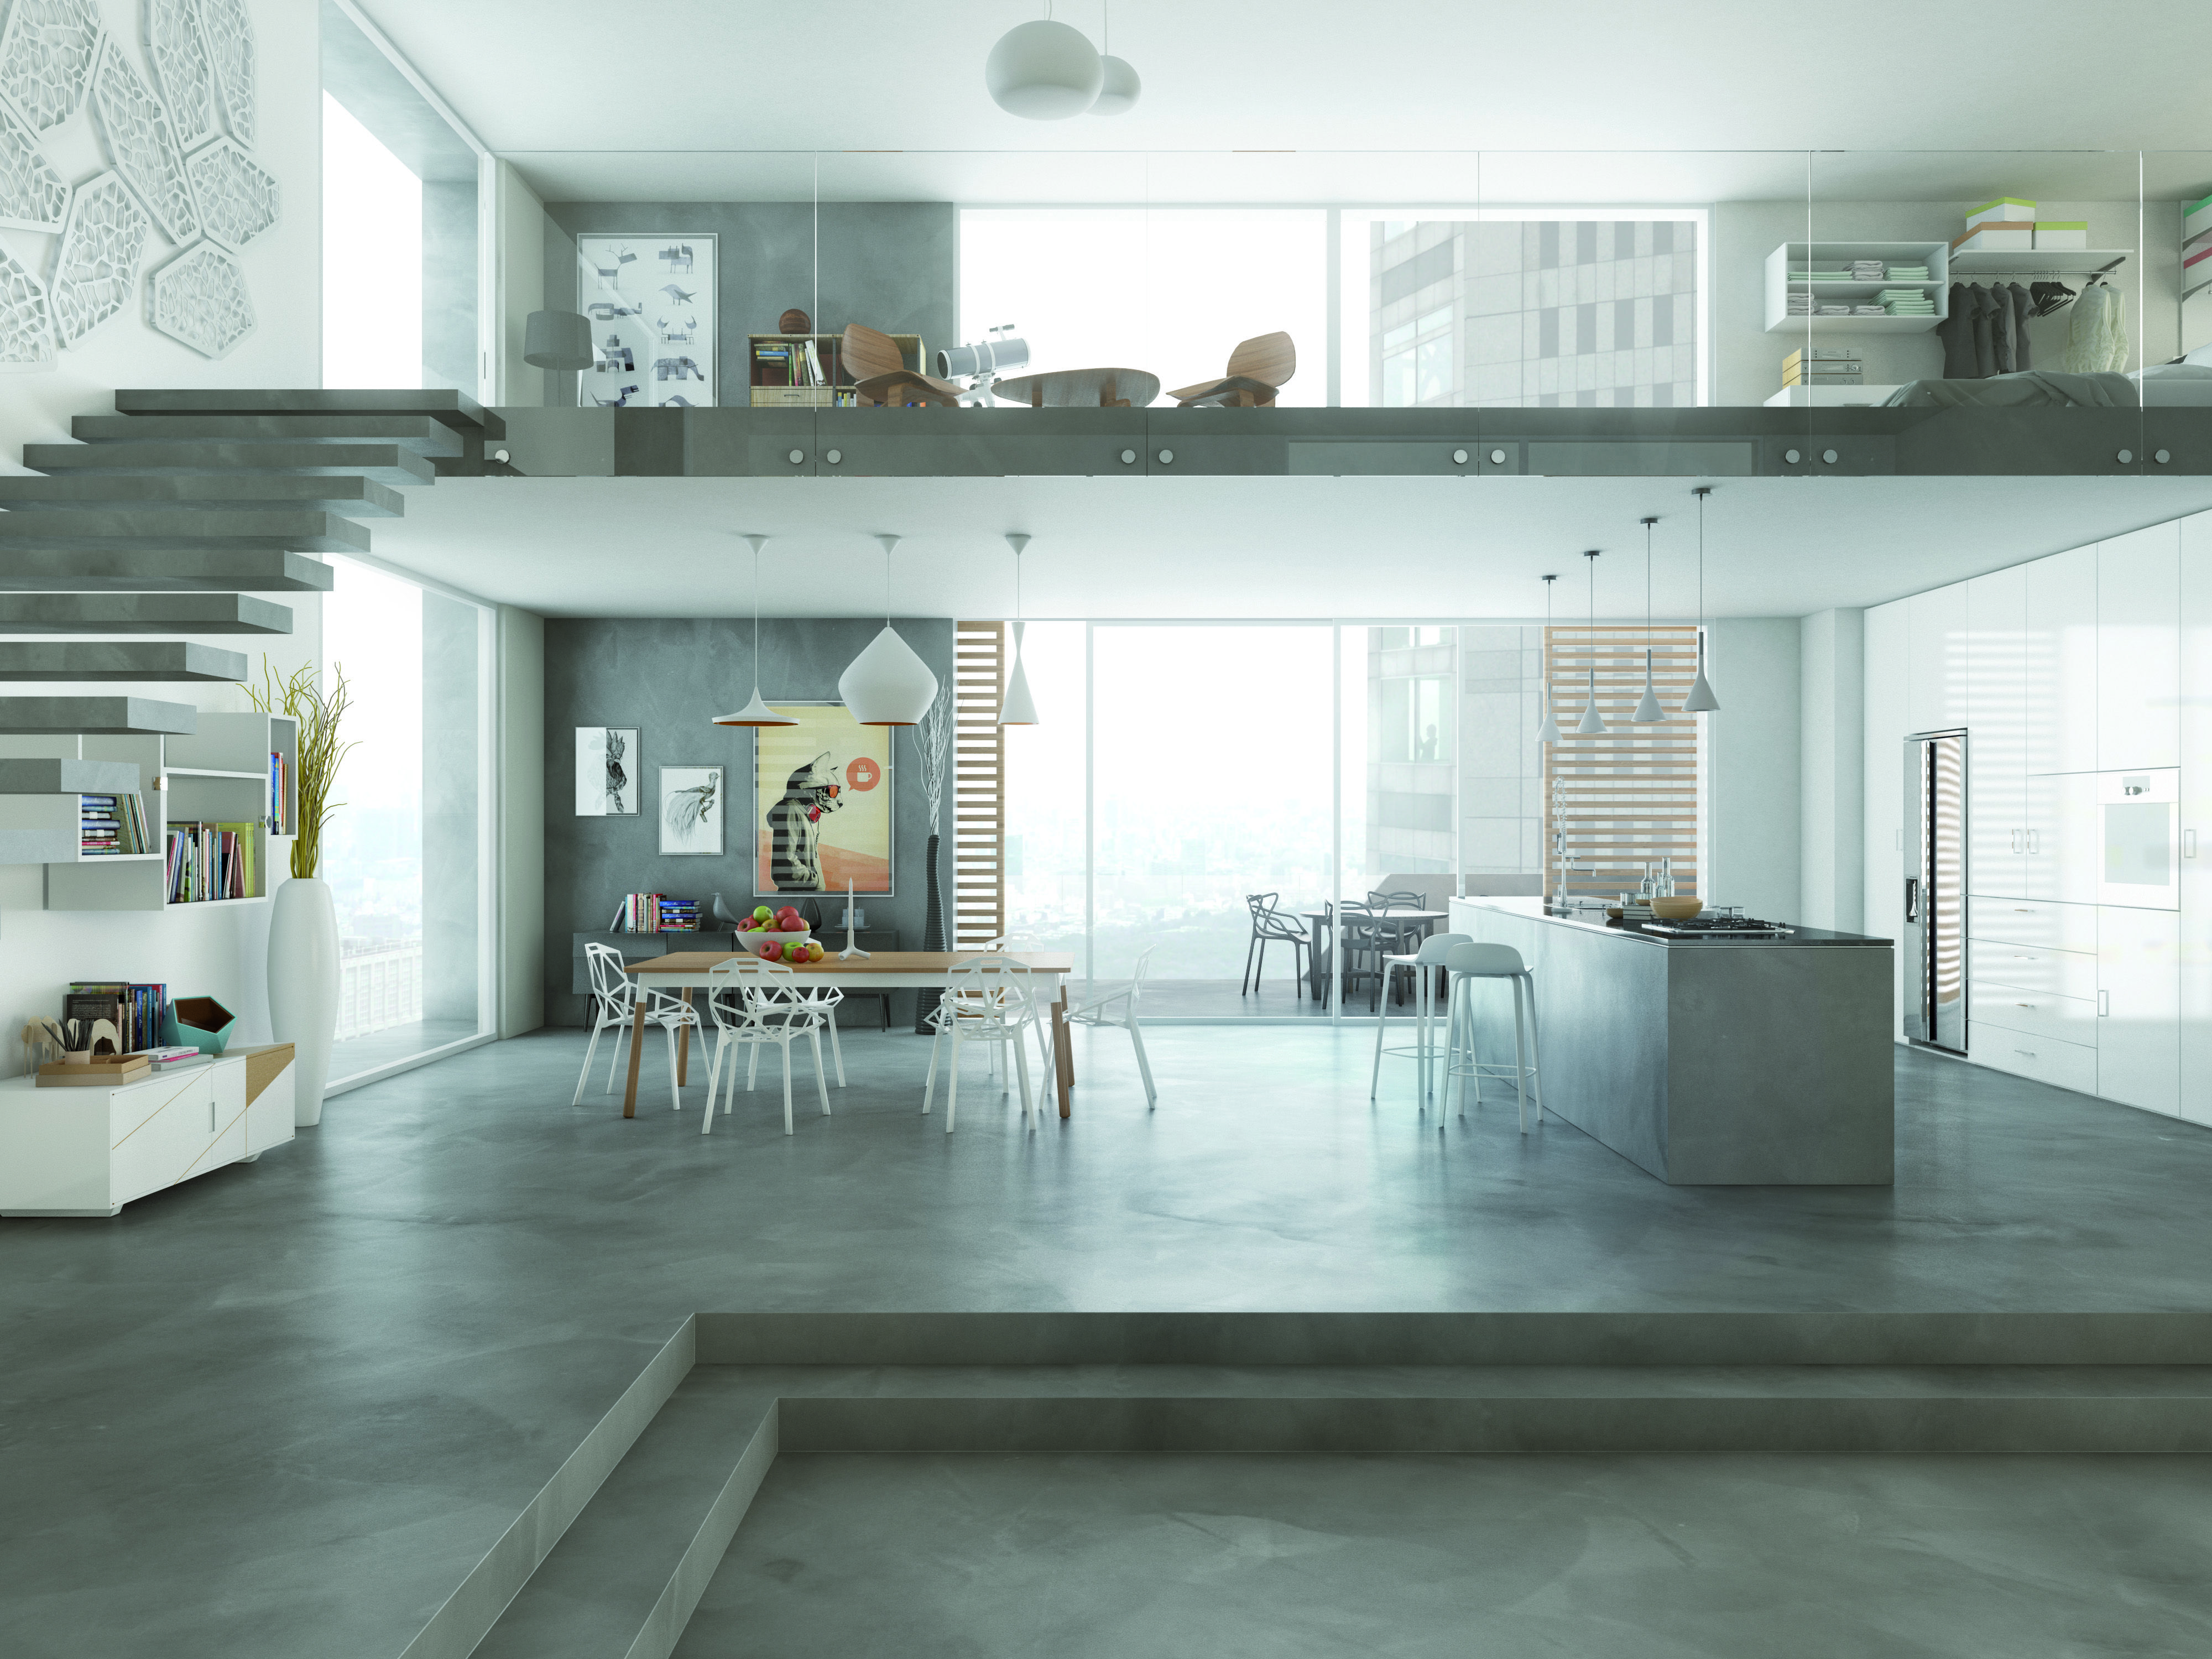 Mapei Uk Has Launched Ultratop Loft F And Ultratop Loft W A Highly Decorative Cementitious Product Tha Concrete Interiors Loft Interiors Interior Architecture